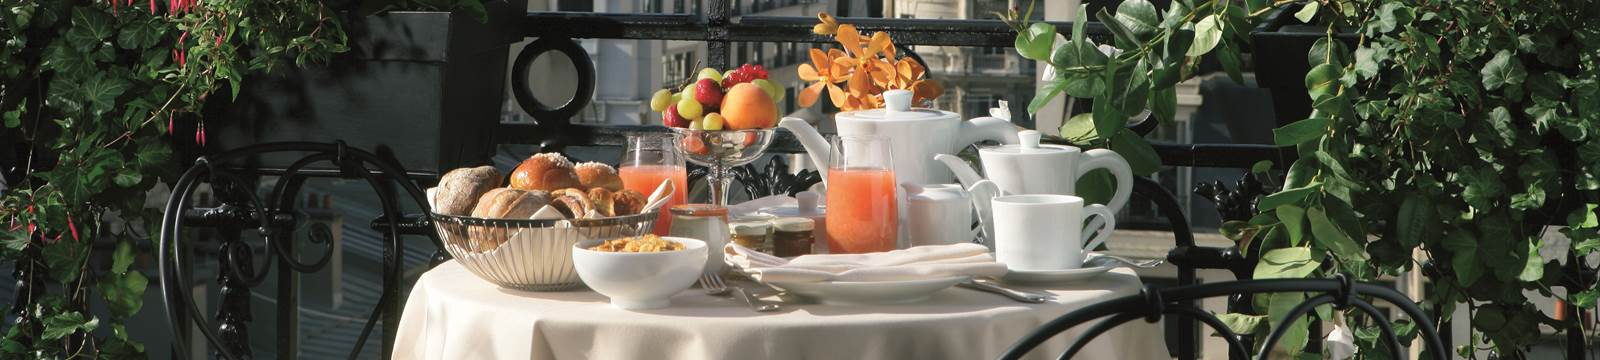 Breakfast Eiffel Tower View Royal Suite Hotel Balzac Paris